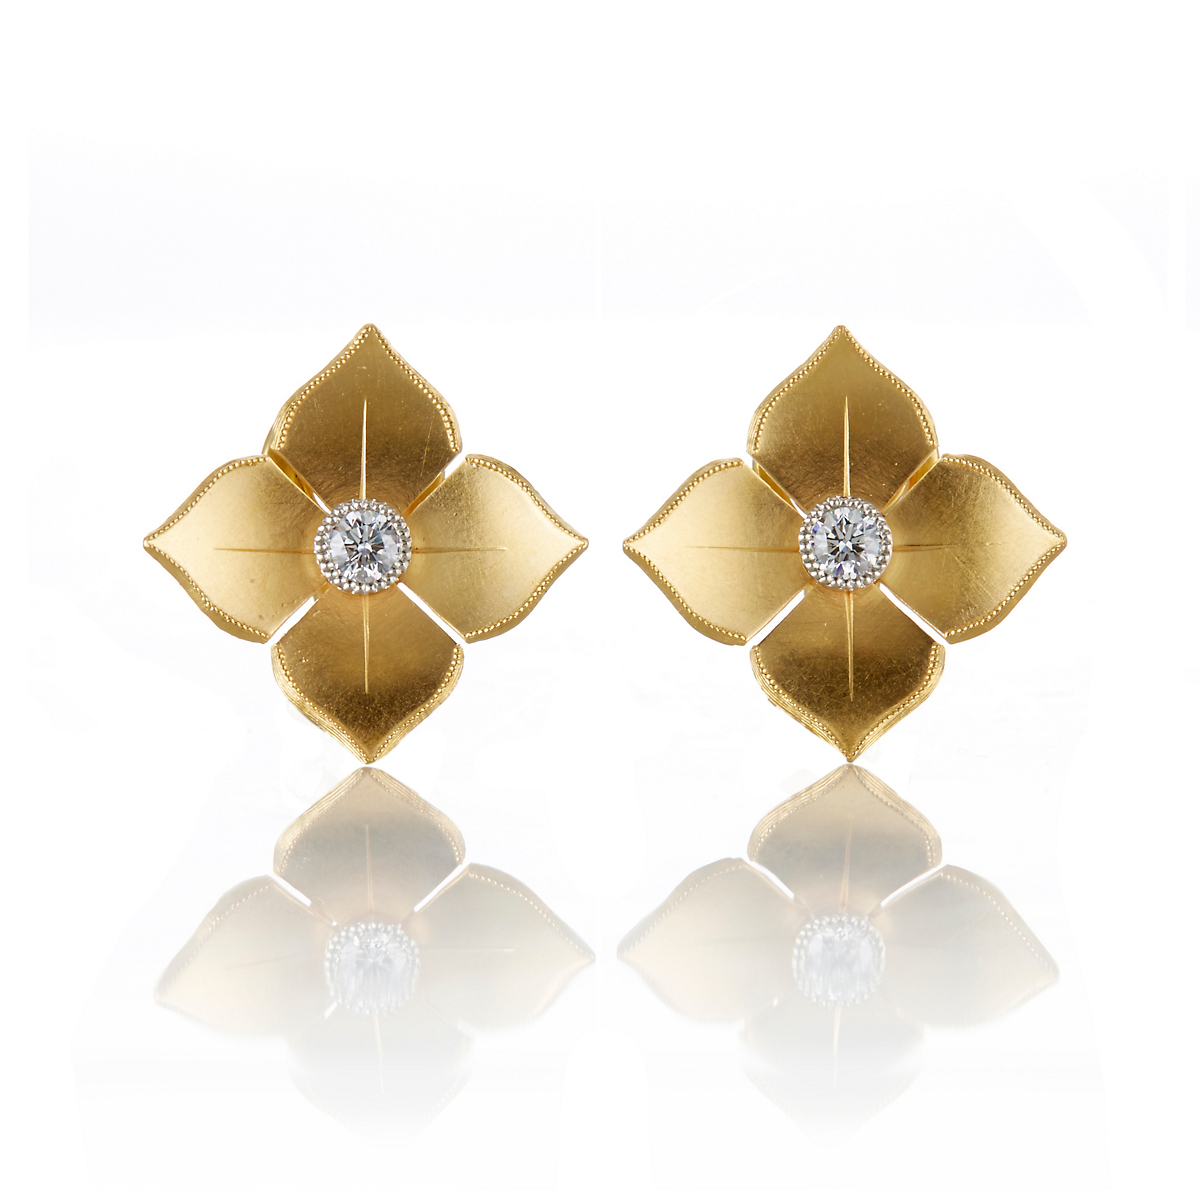 McTeigue & McClelland Platinum & Gold Large Quadrille Stud Earrings